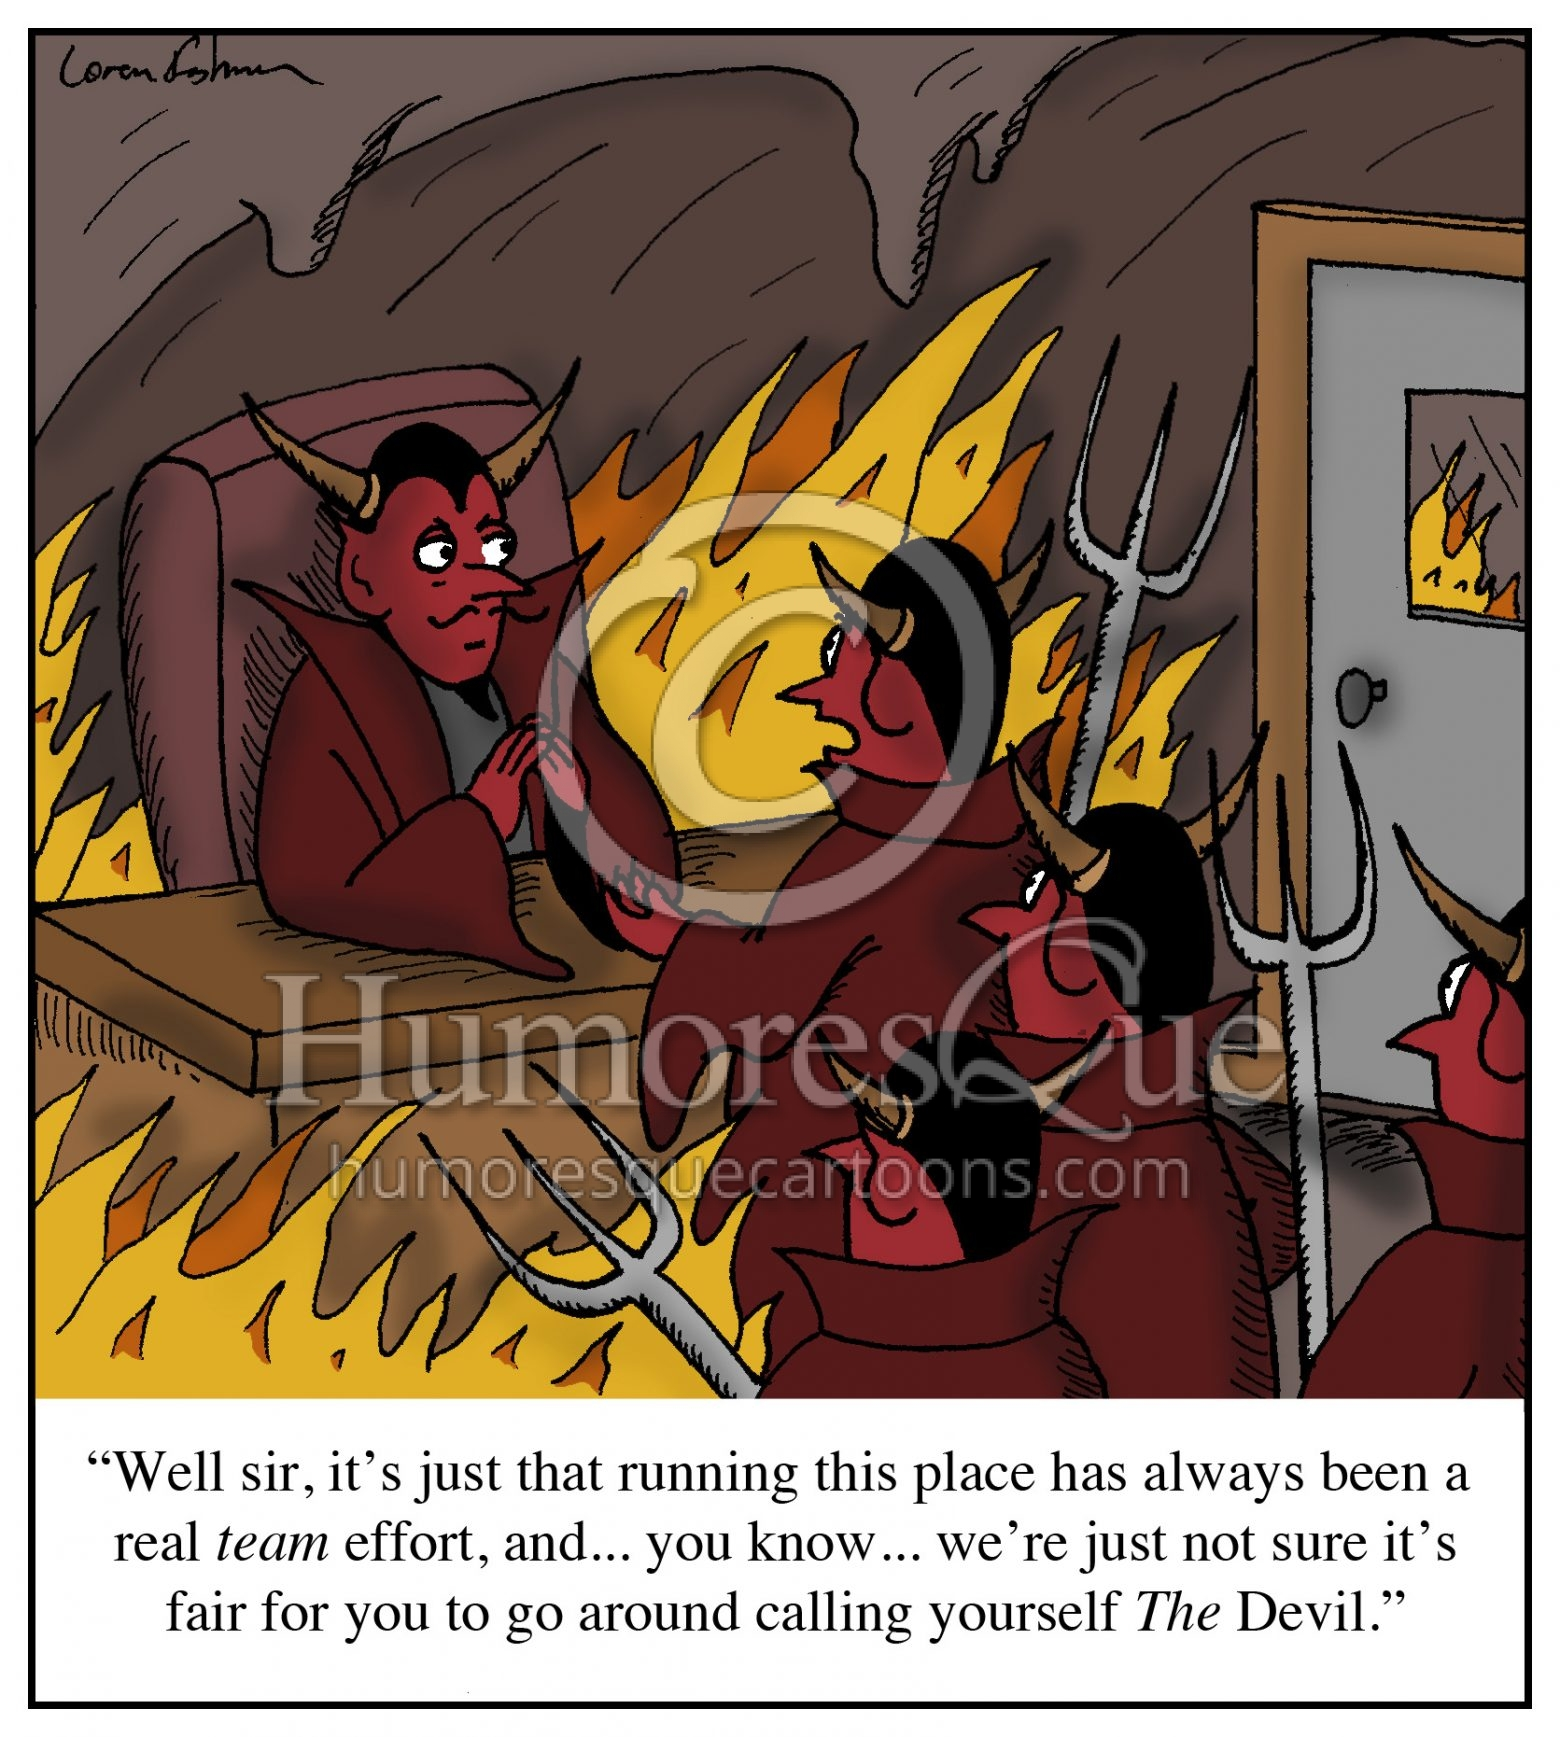 titles and equitable treatment in the workplace devil cartoon